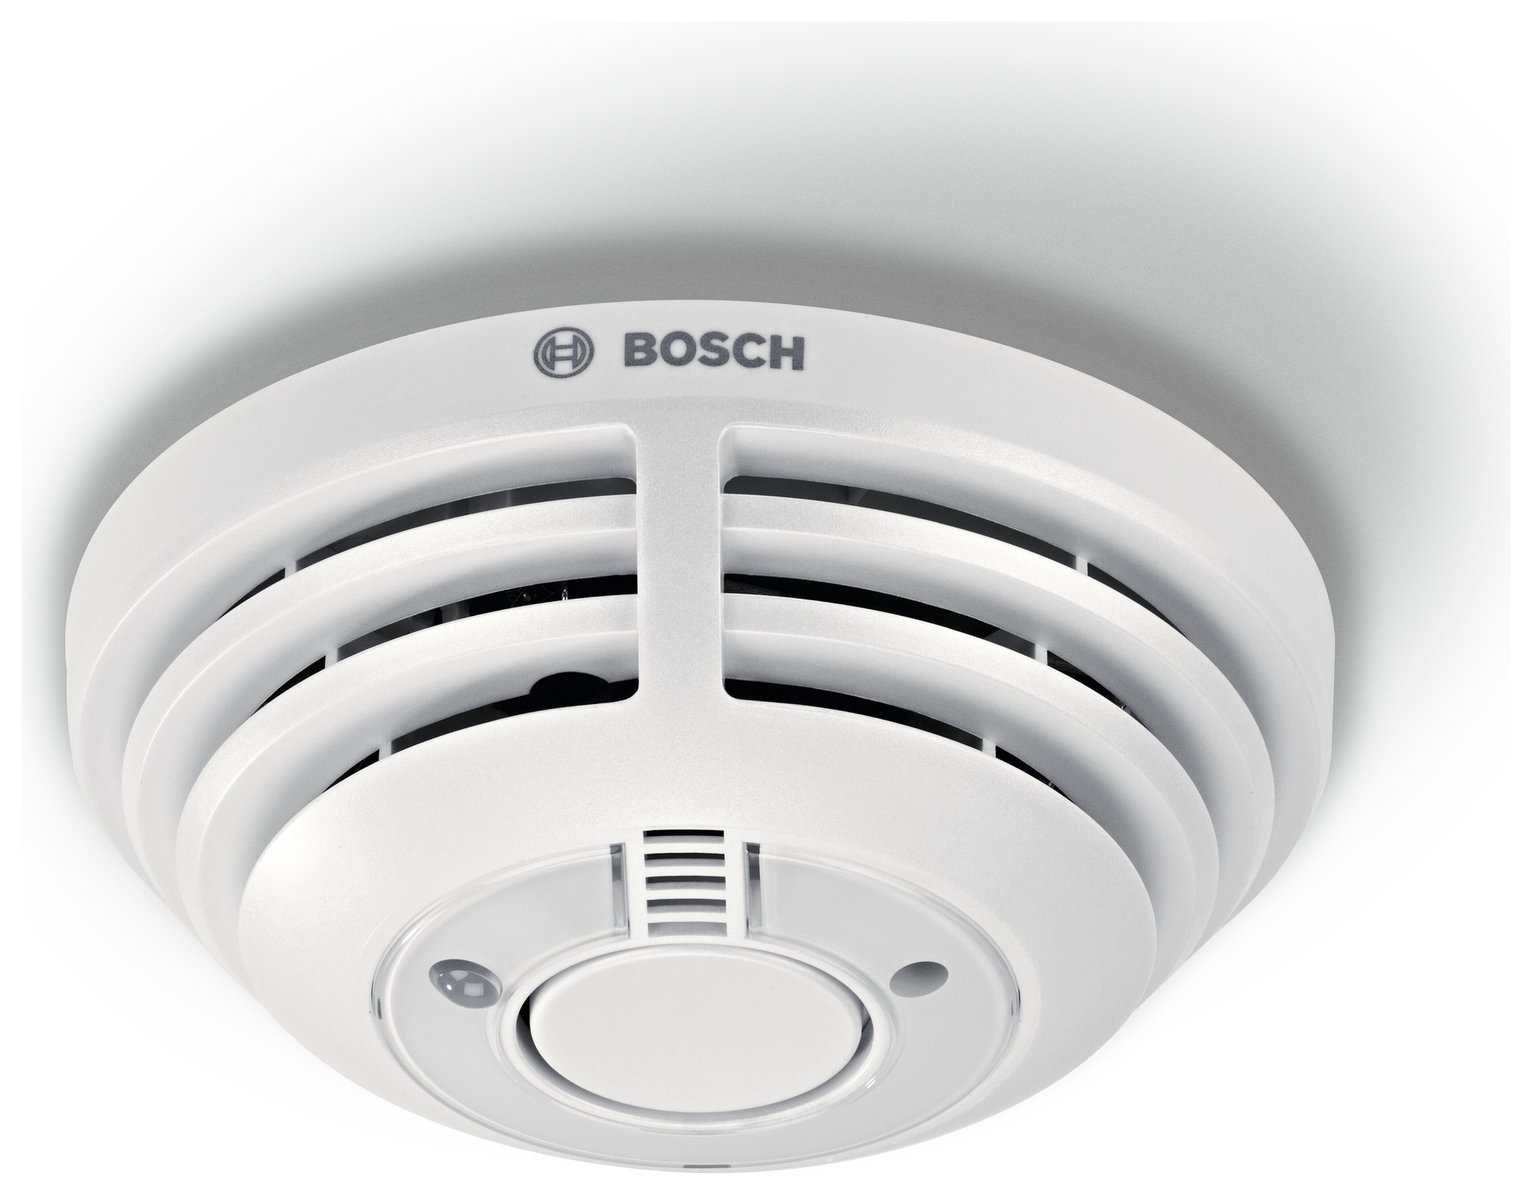 Bosch Smart Home Smoke Detector